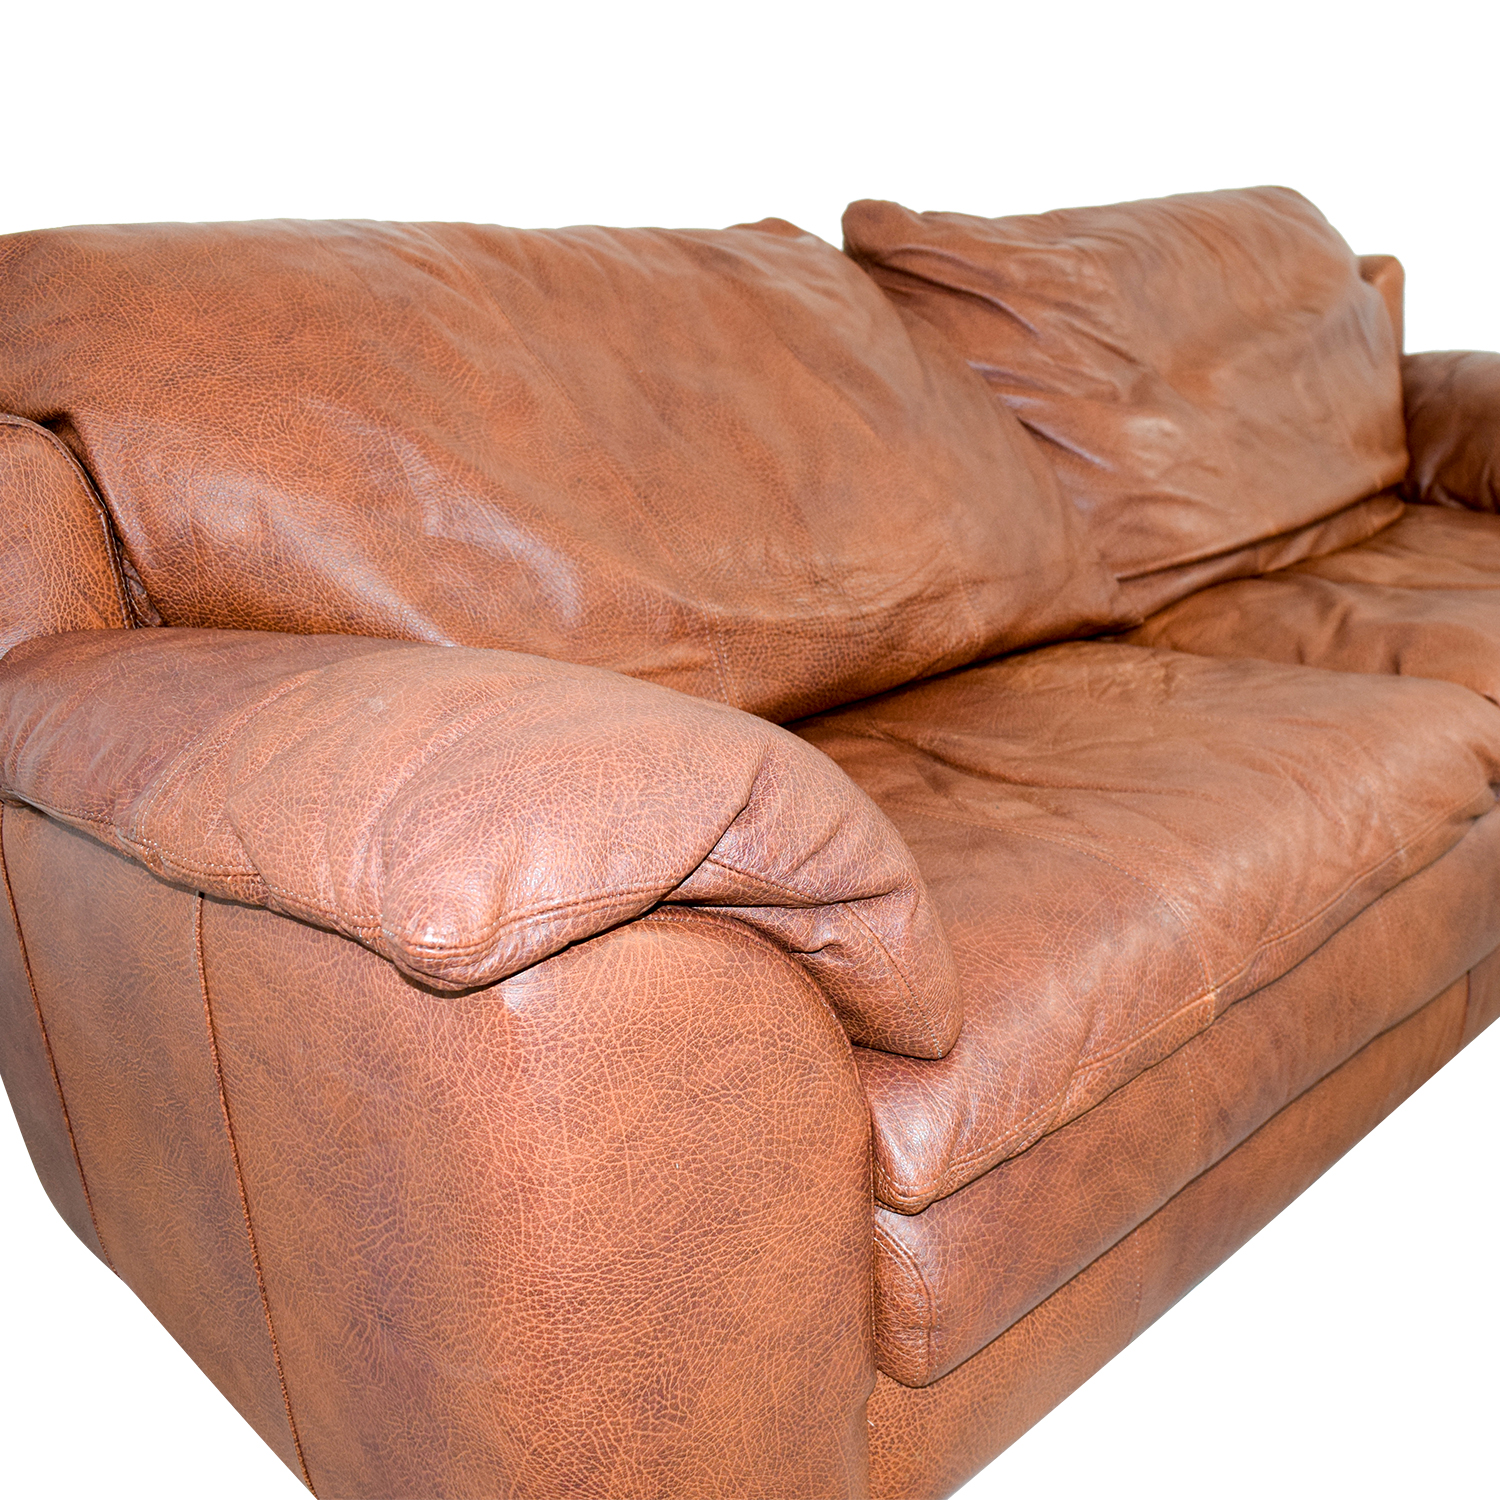 buy Rust Two-Cushion Leather Couch with Pillowed Arms Sofas